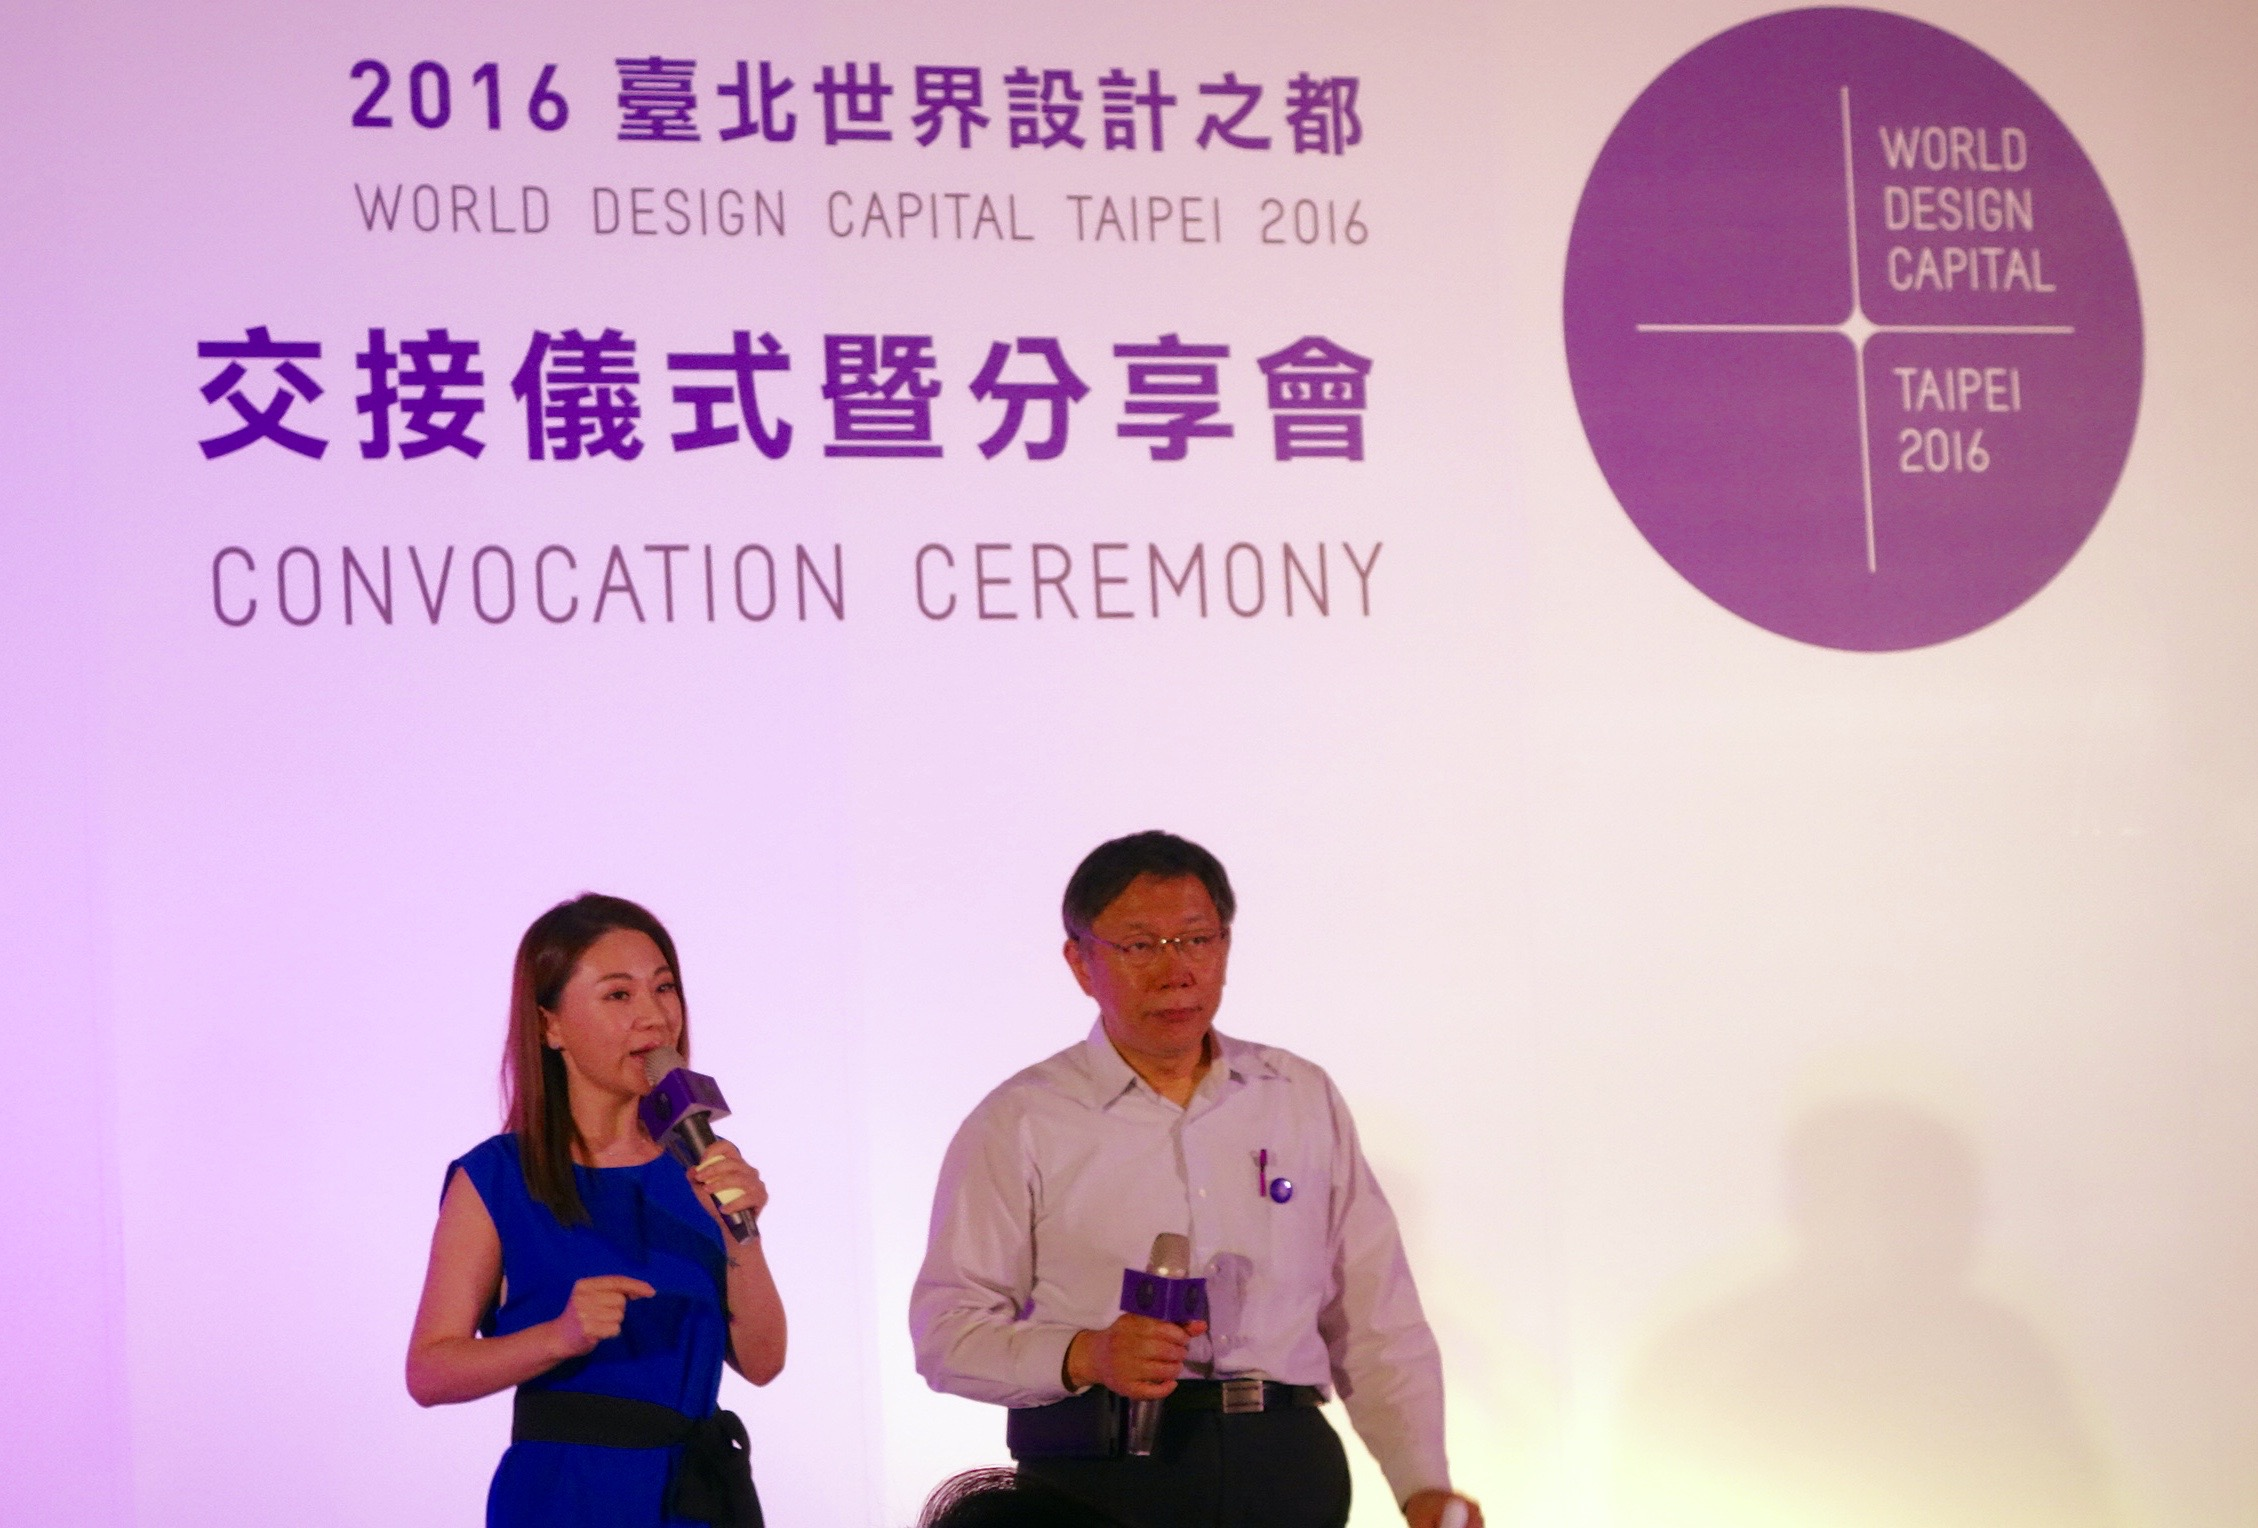 Taipei City Mayor Ko Wen-je (right) speaks at the convocation ceremony.